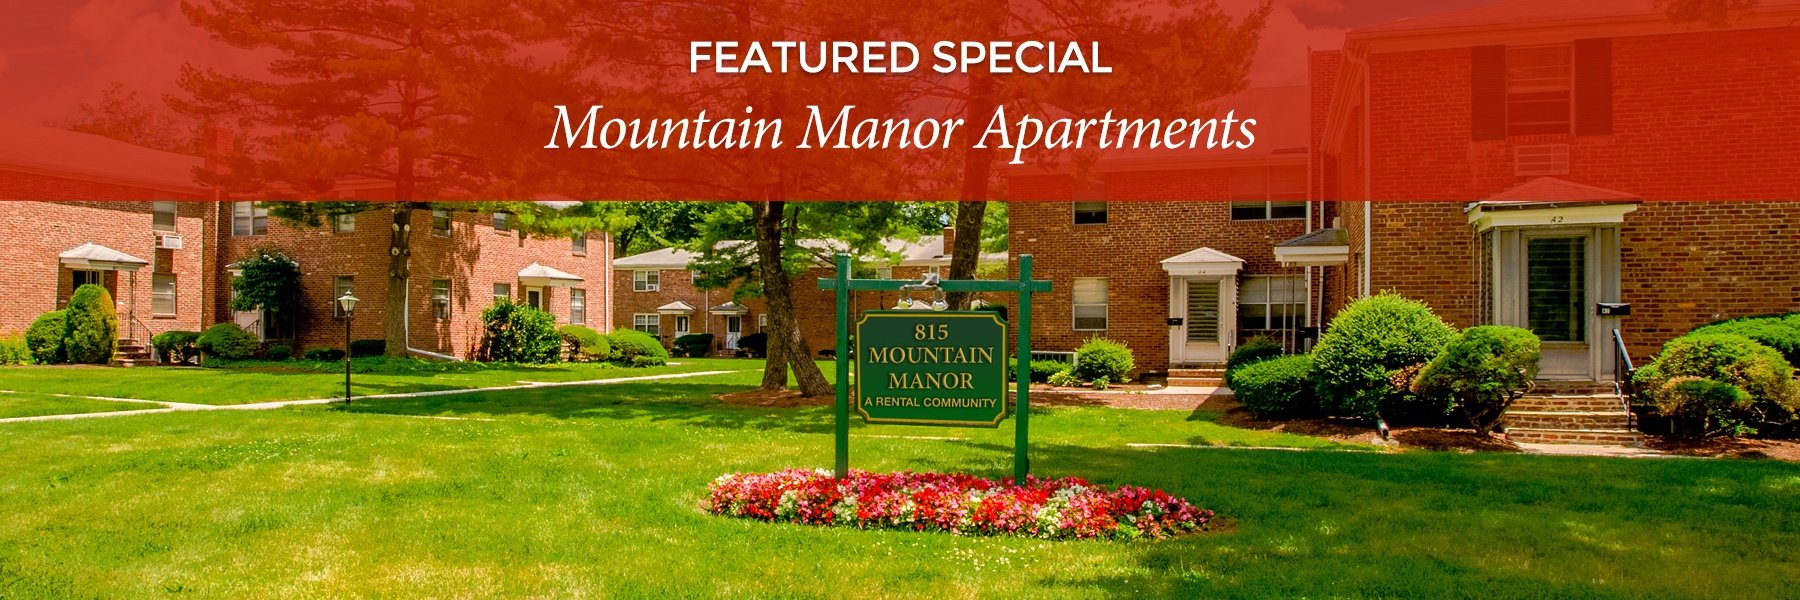 Mountain Manor Apartments For Rent in Springfield, NJ Specials